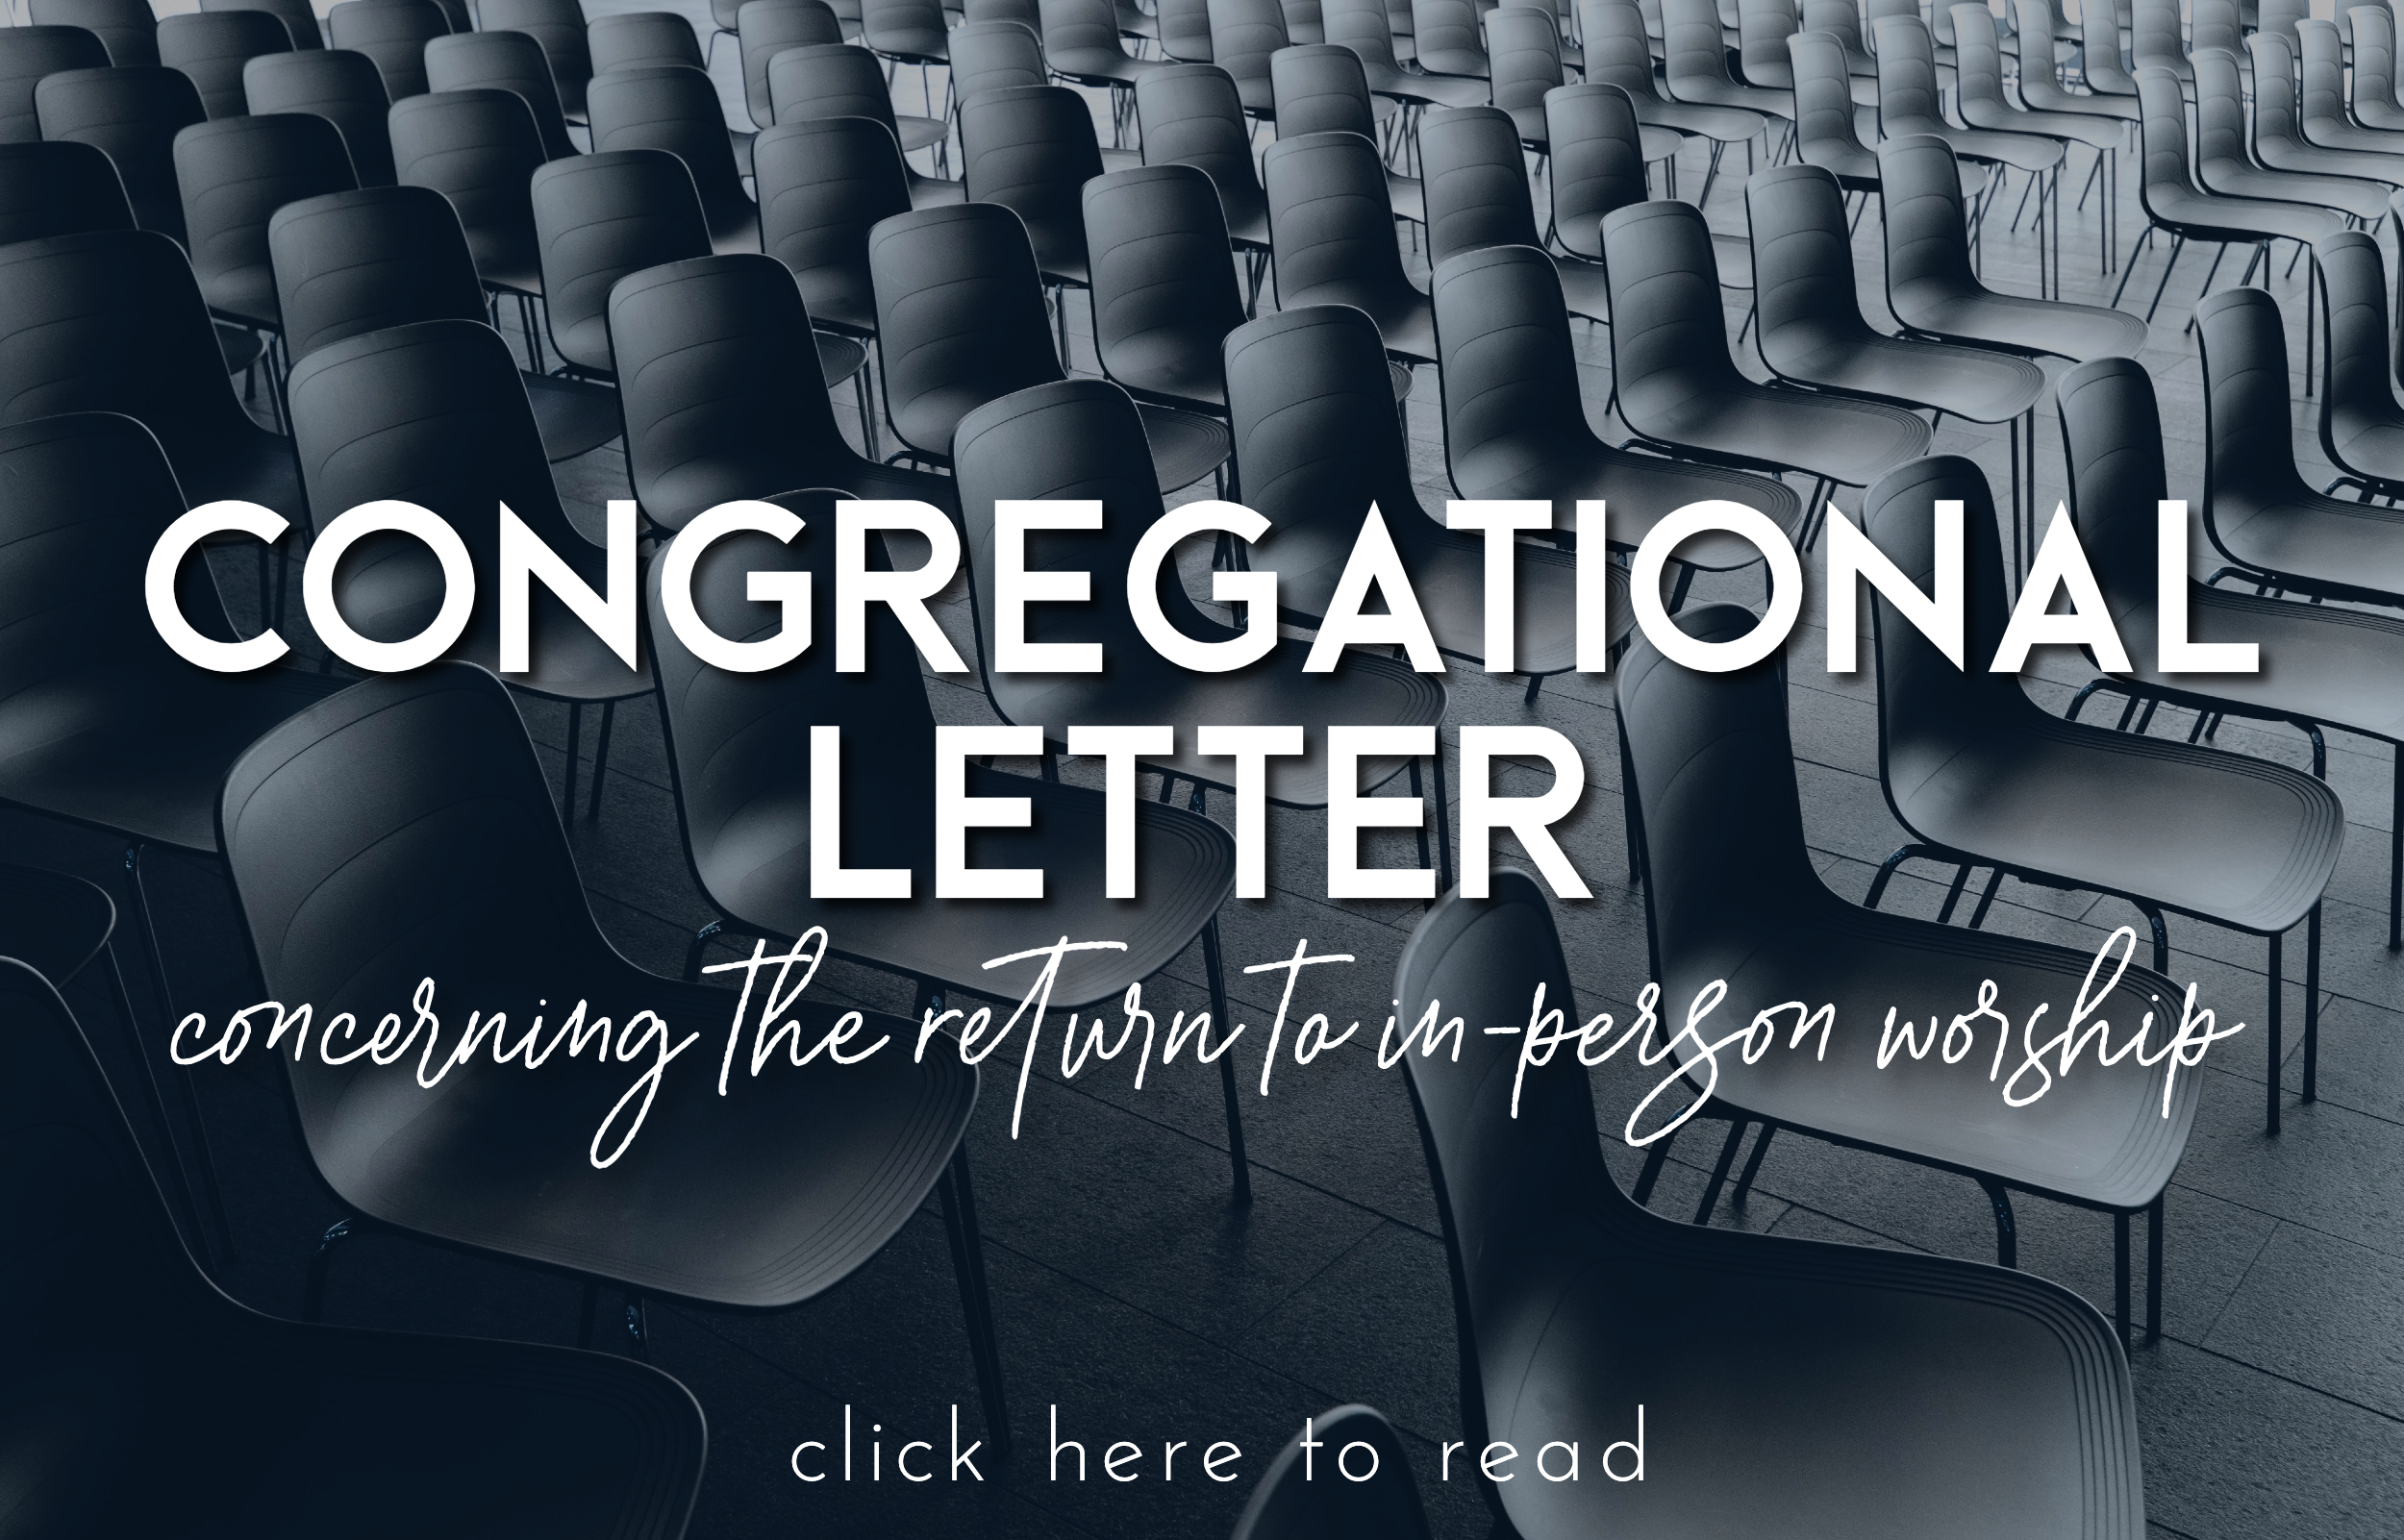 Congregational Letter concerning return to worship